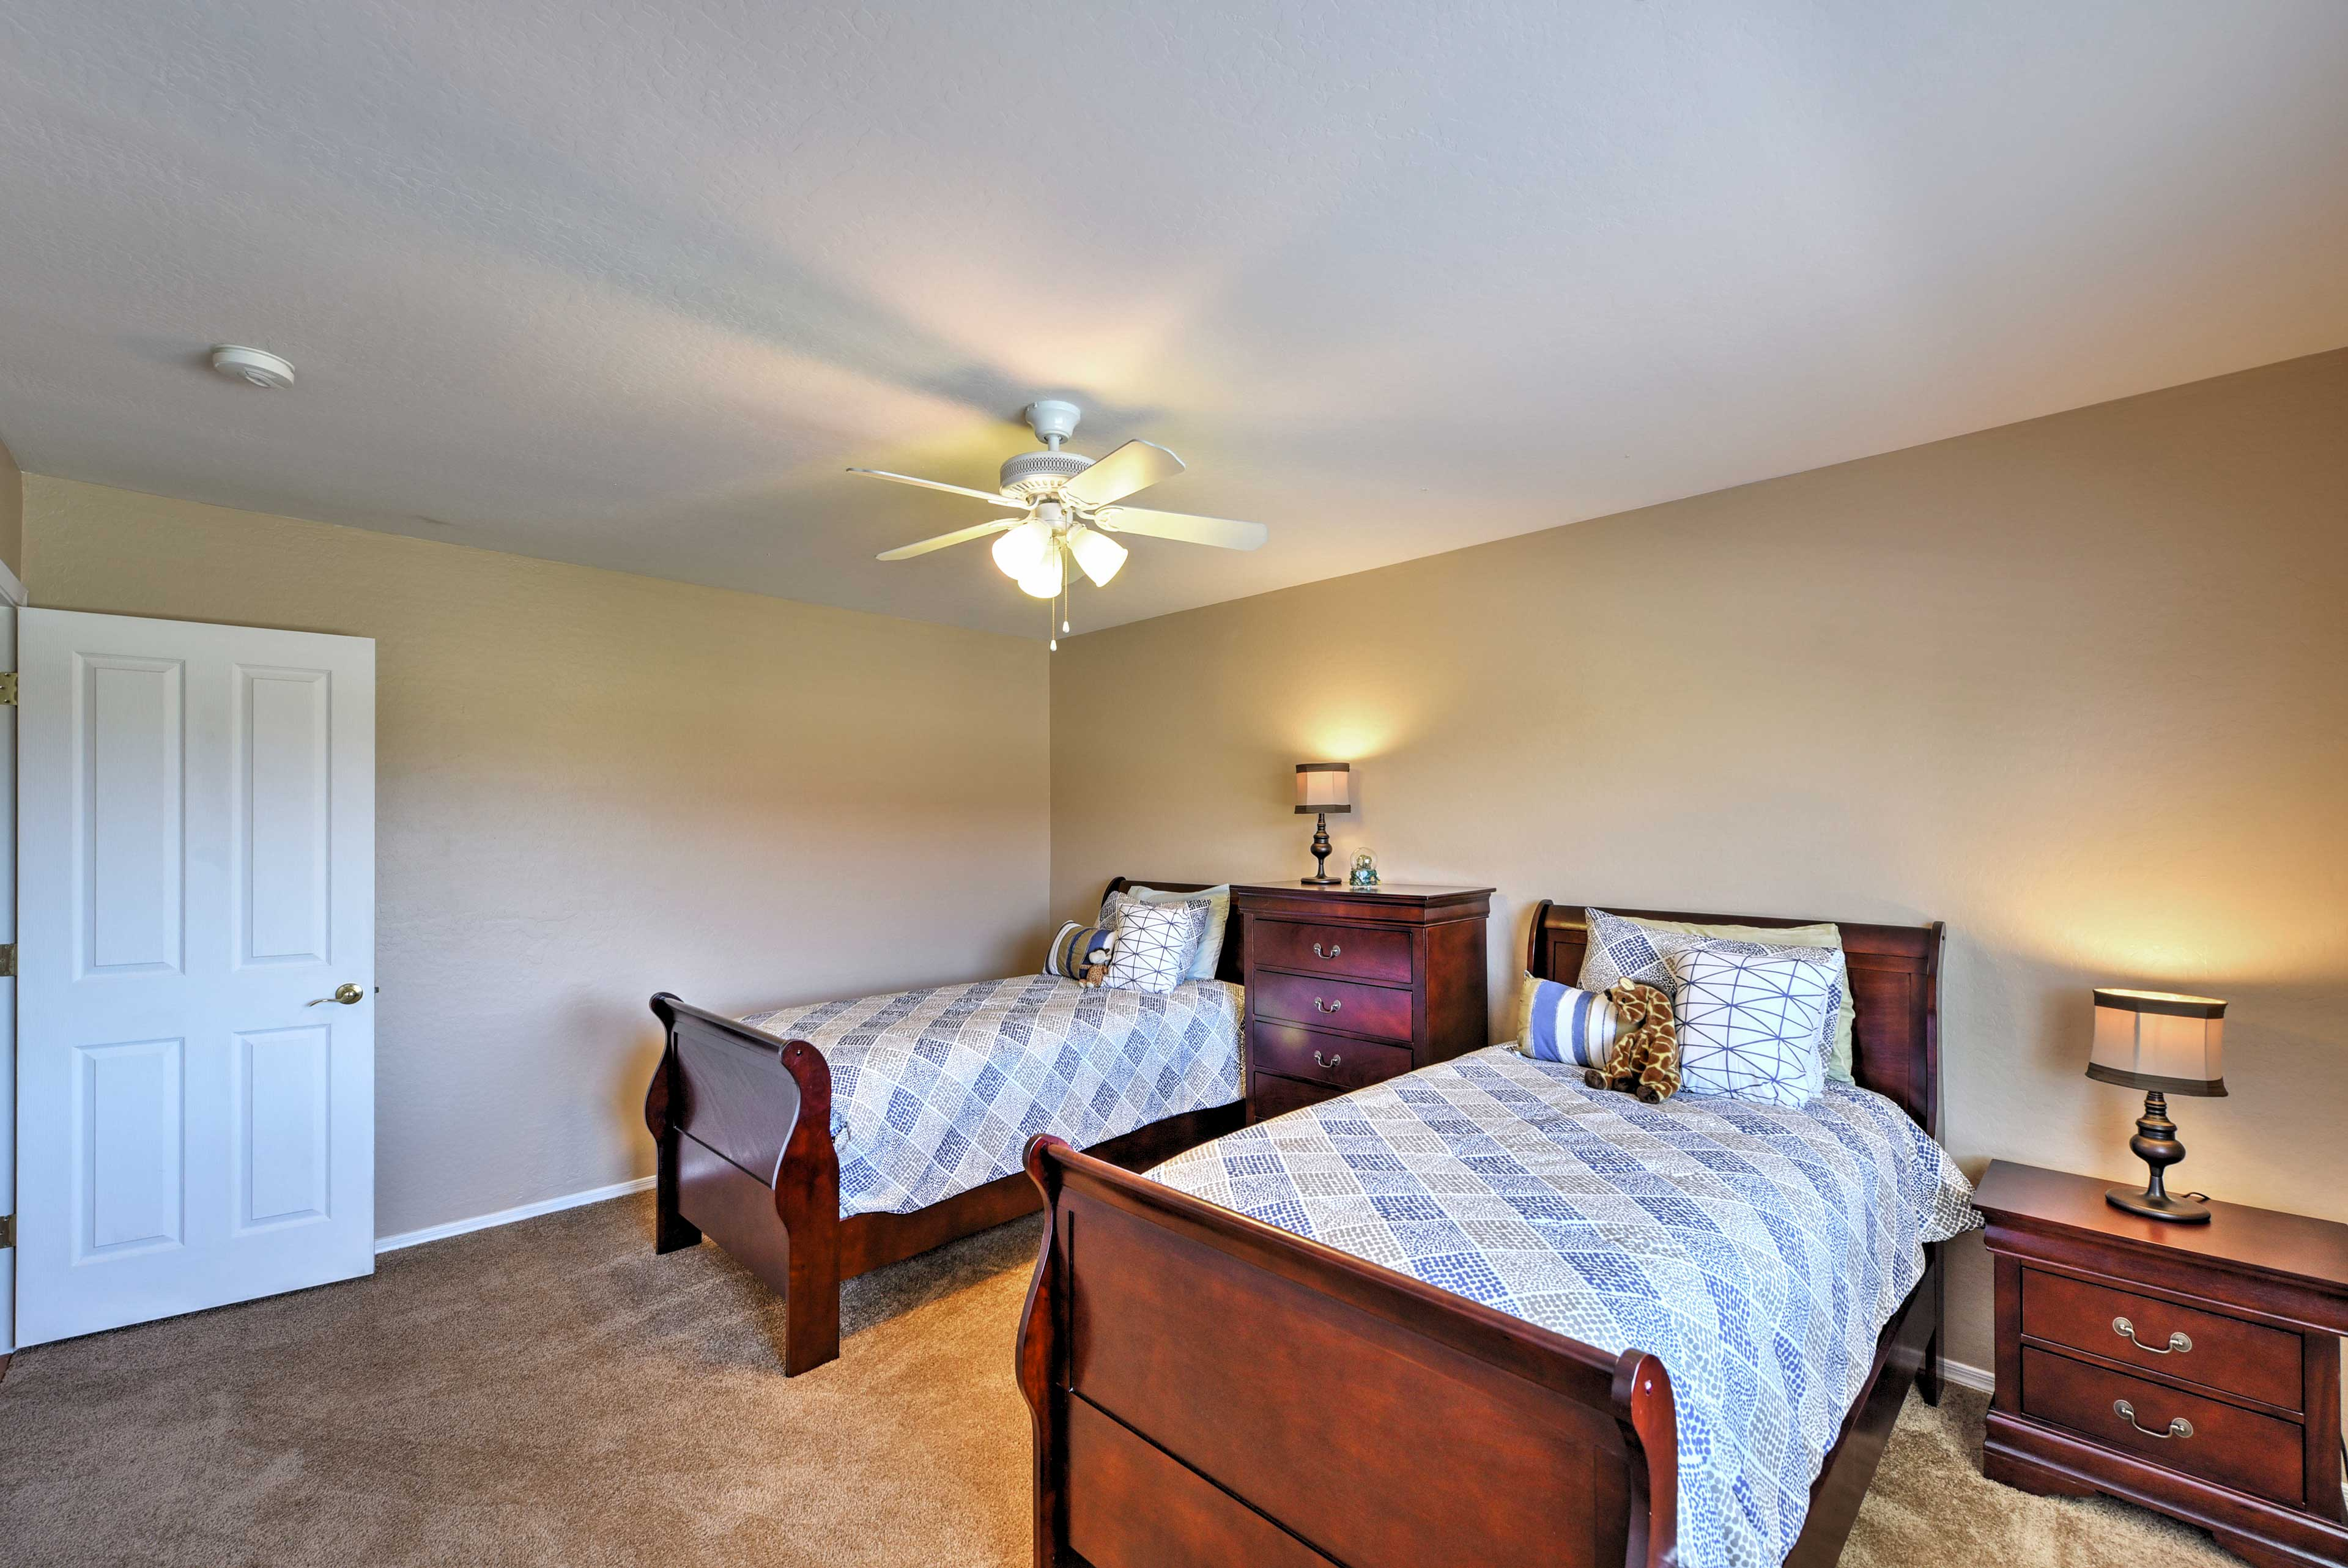 The last bedroom has 2 twin-sized beds.